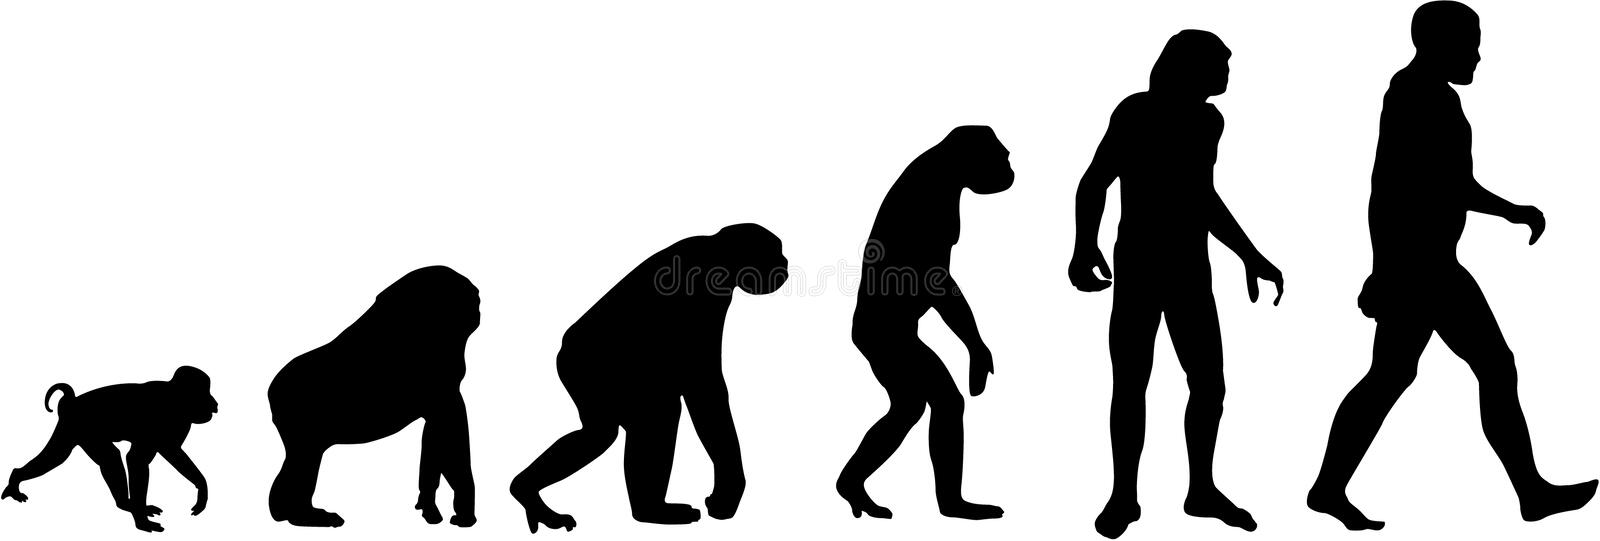 Evolutie vector illustratie